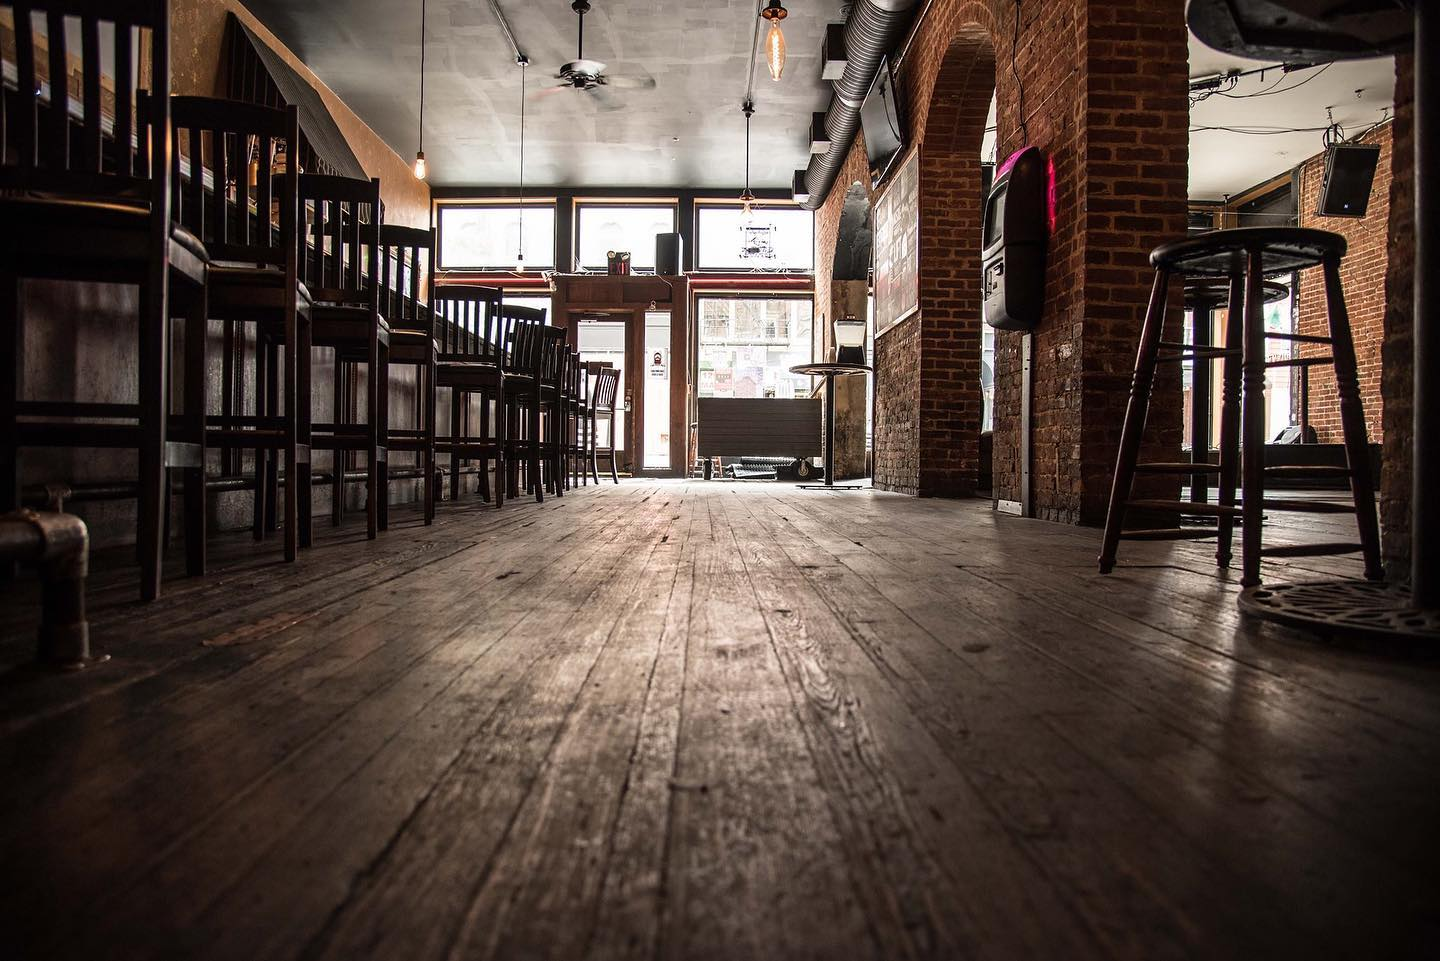 The Drinkery is made of wood, brick, and has an old bar feel